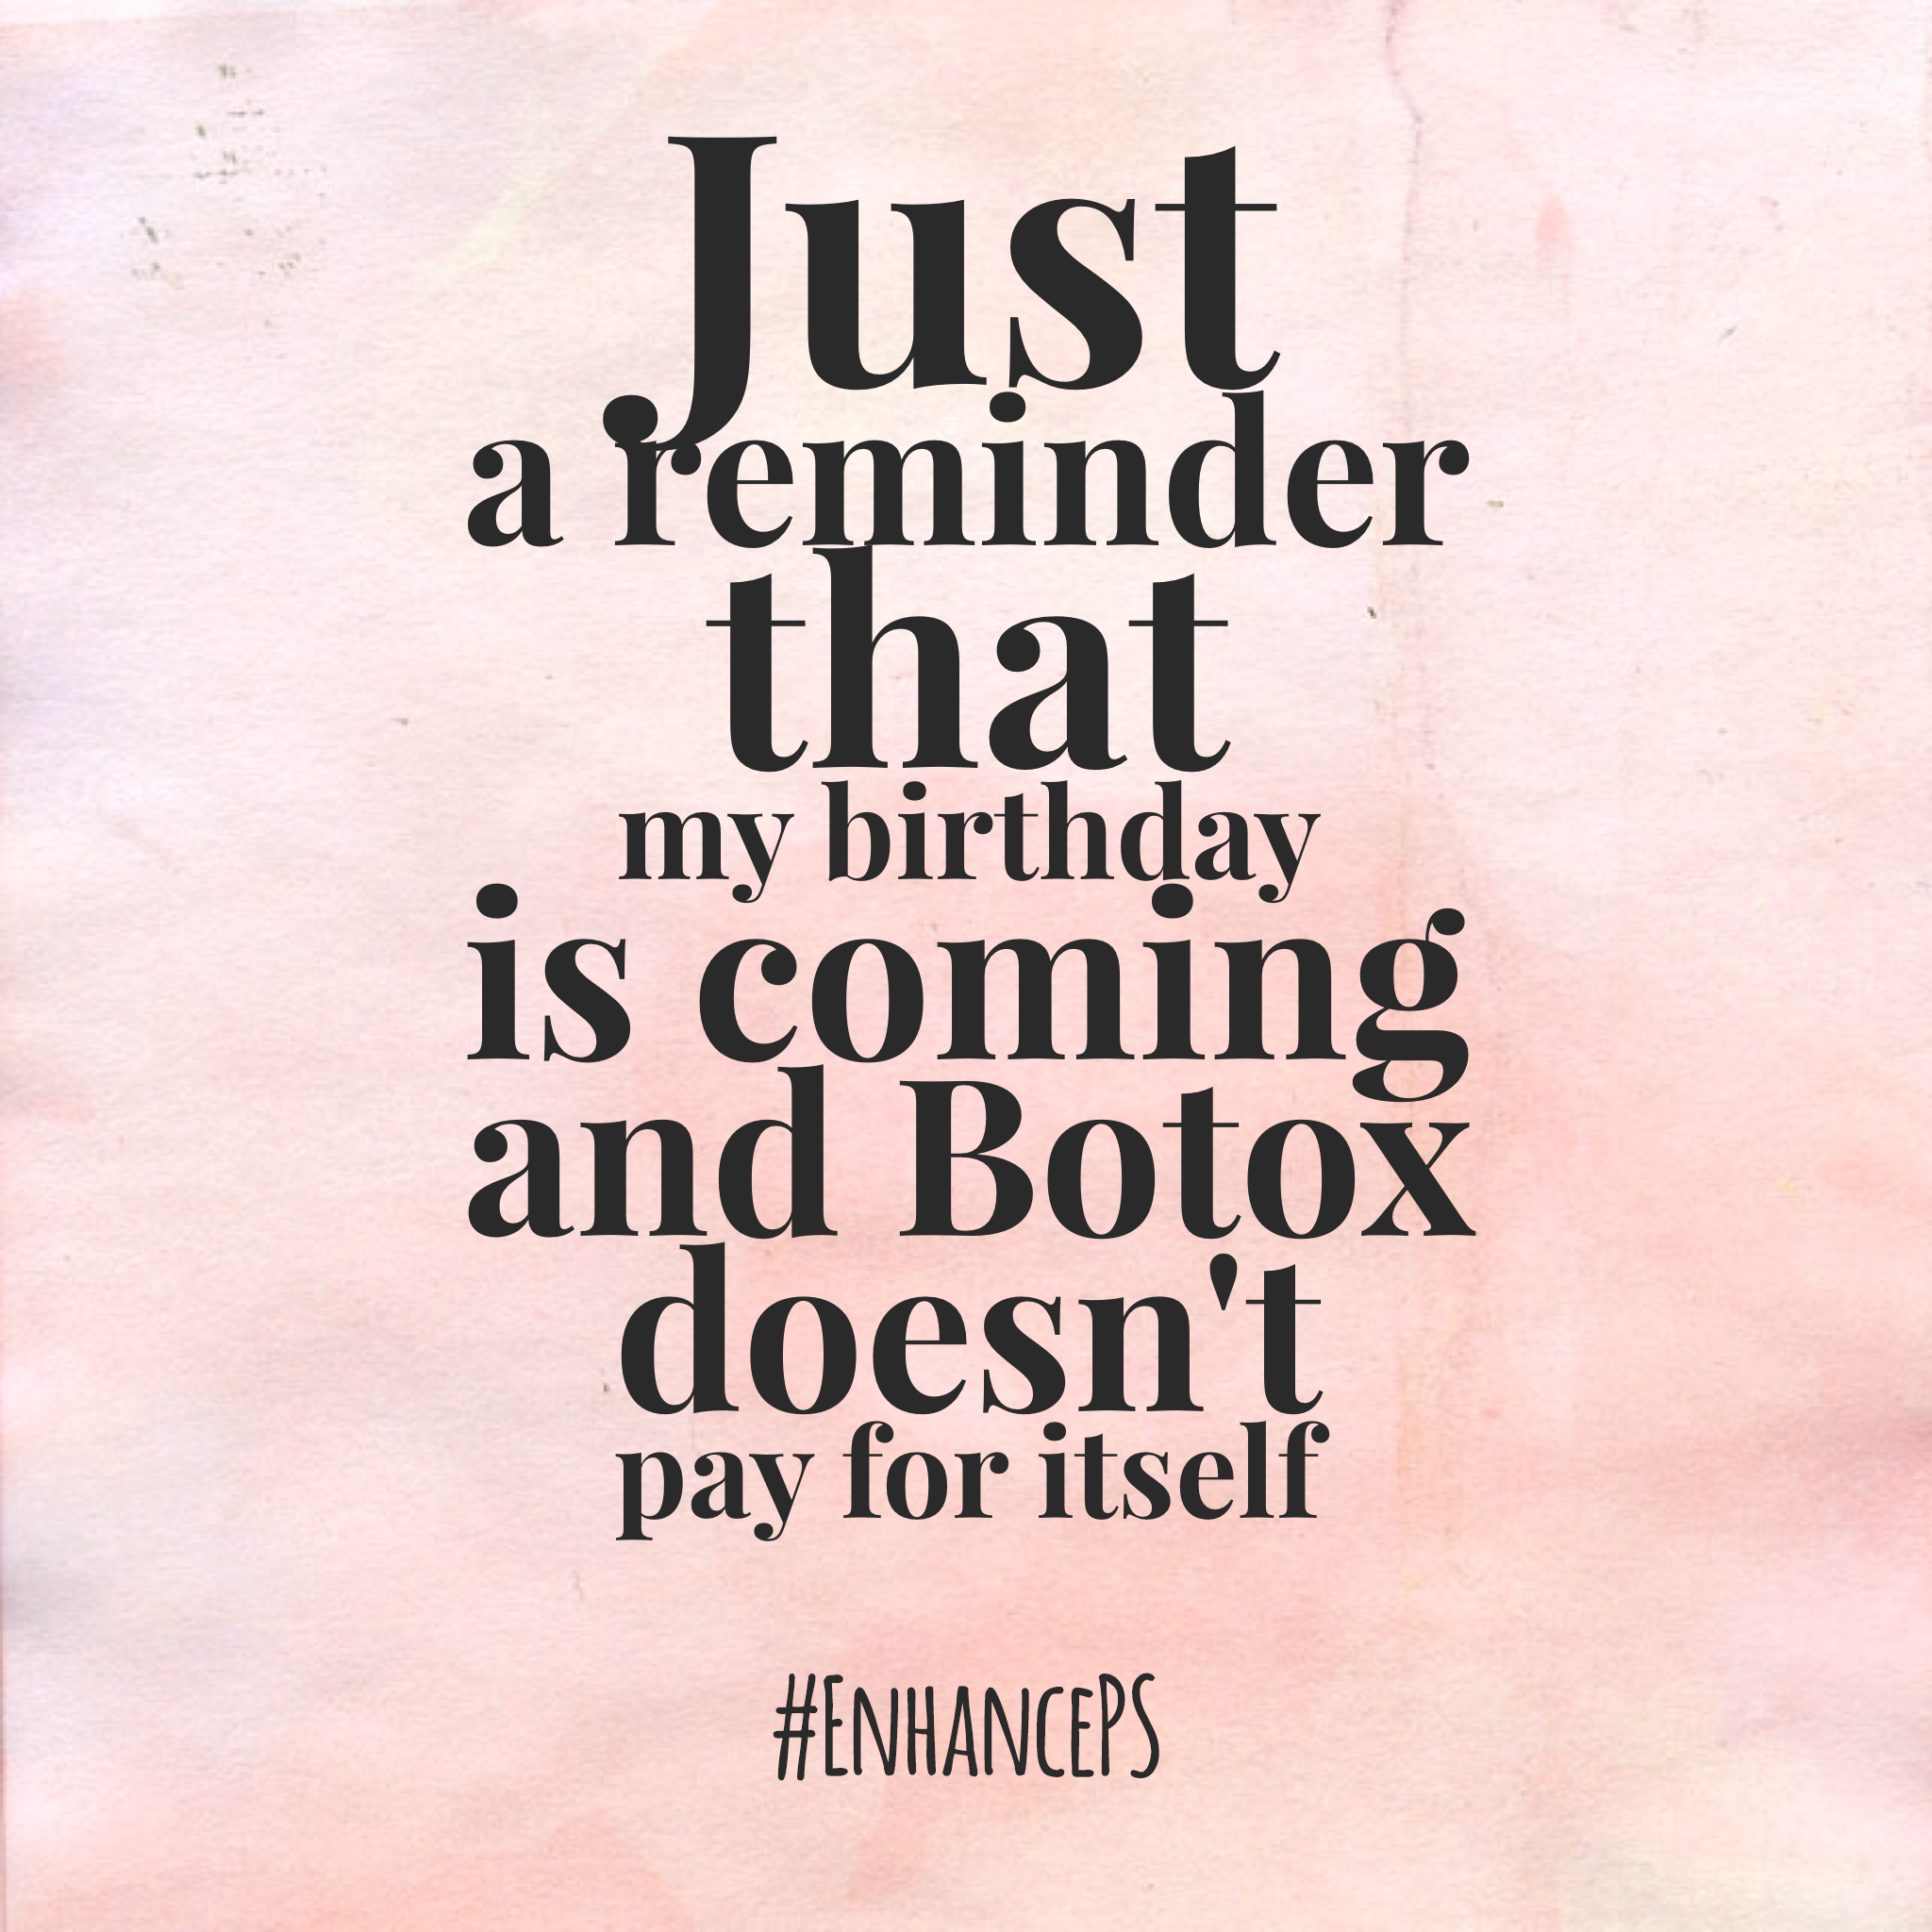 Just a reminder that my Birthday is coming and botox doesn ...